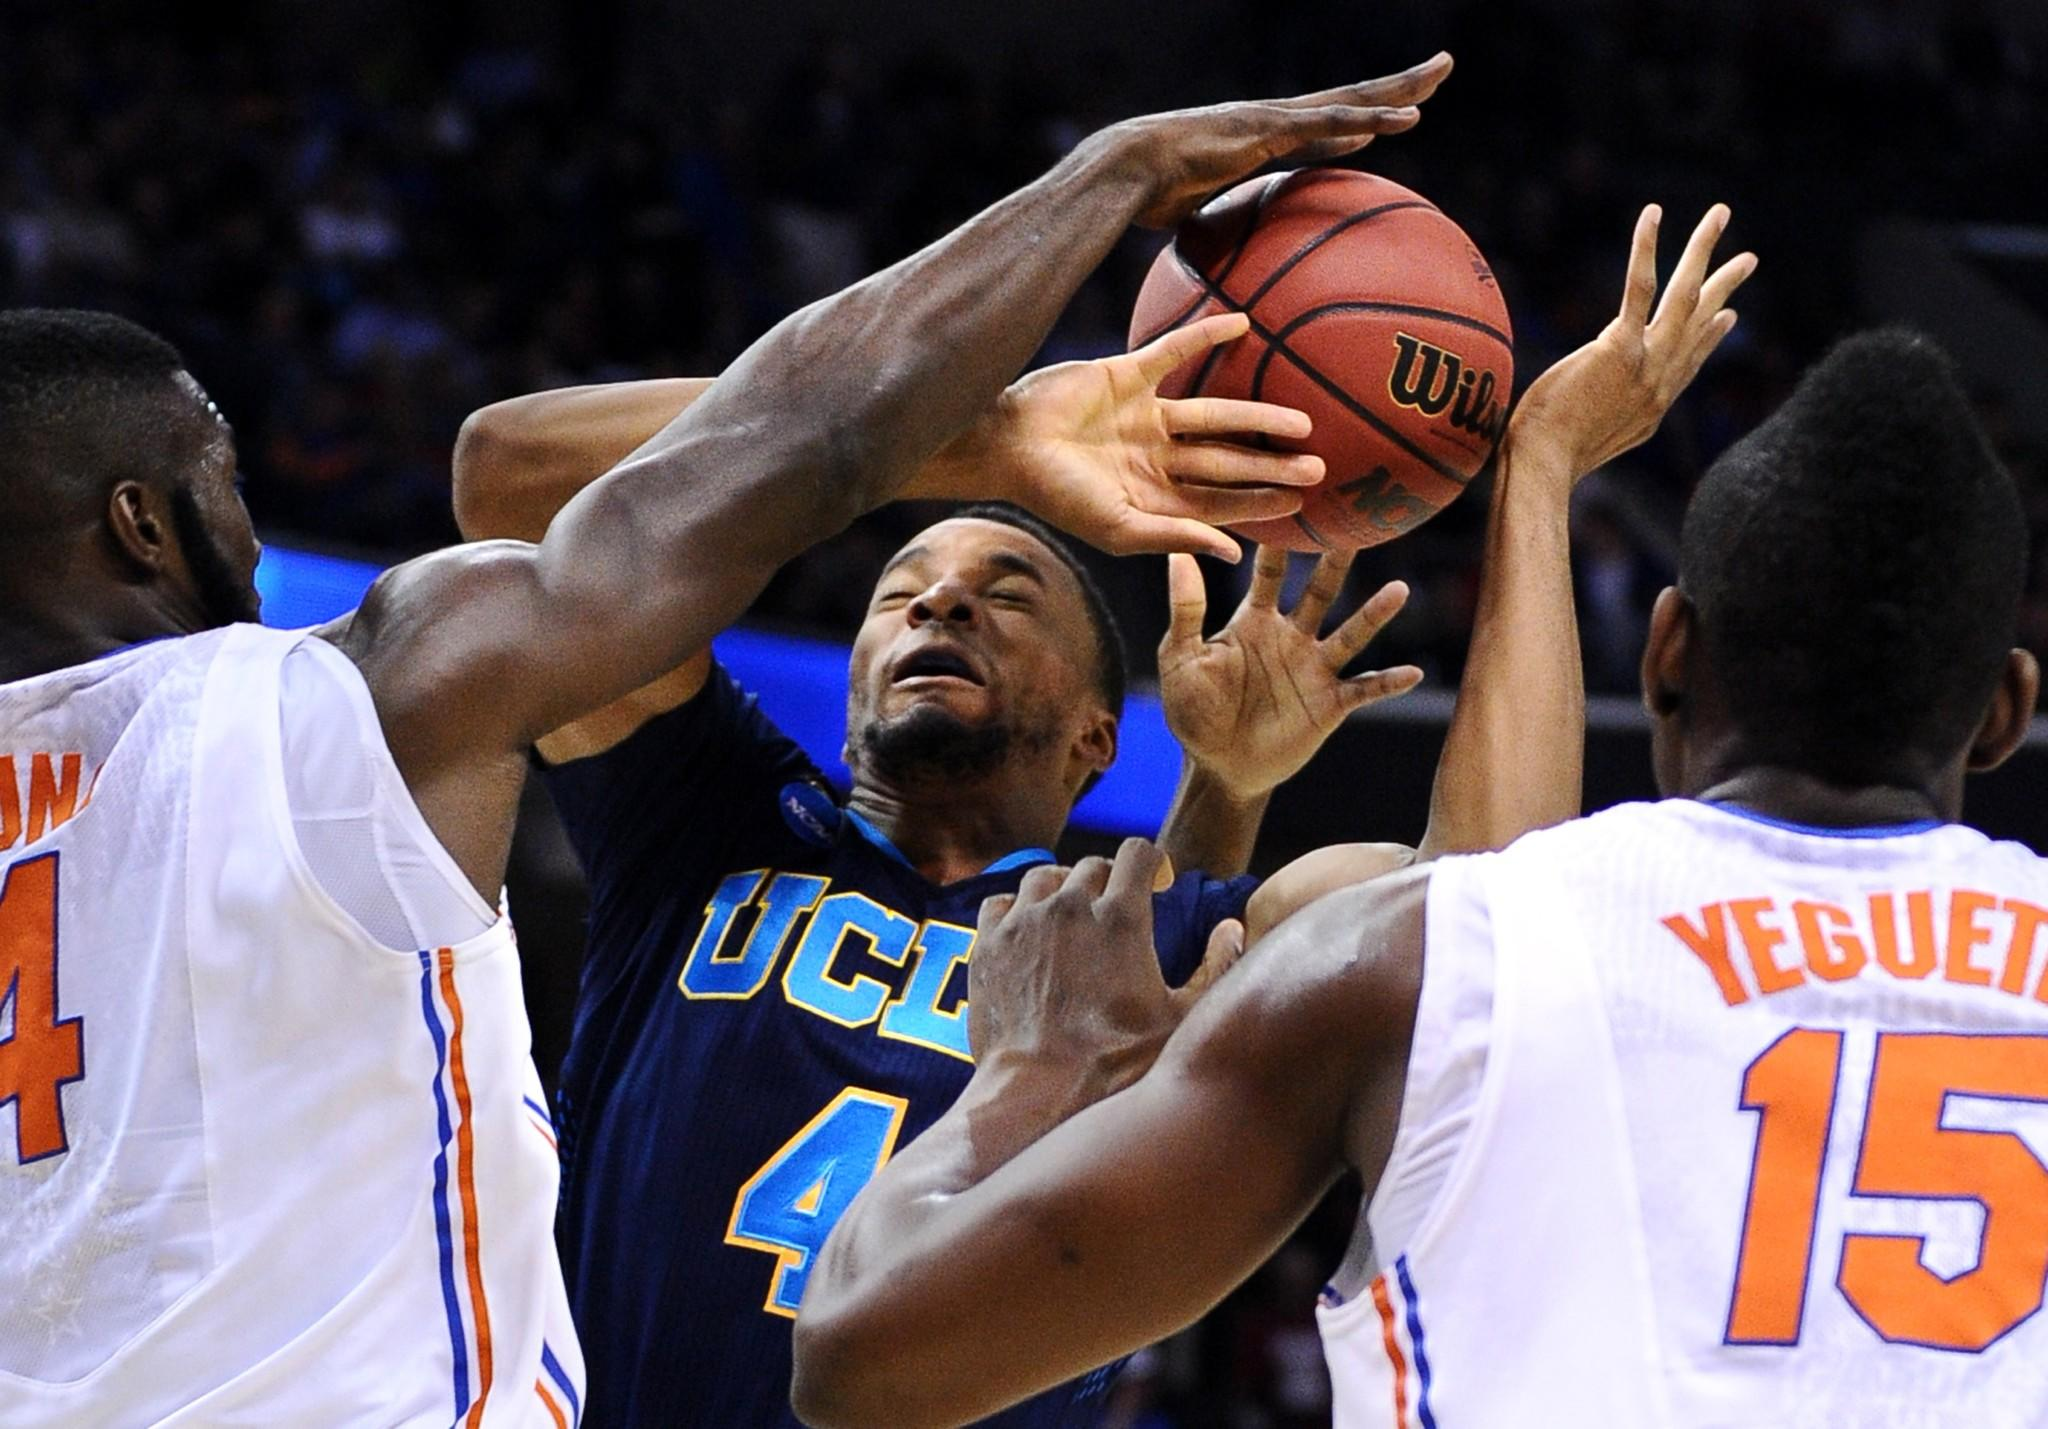 Bruins guard Norman Powell is fouled by Gators forward Patric Young on a shot in their NCAA tournament game.